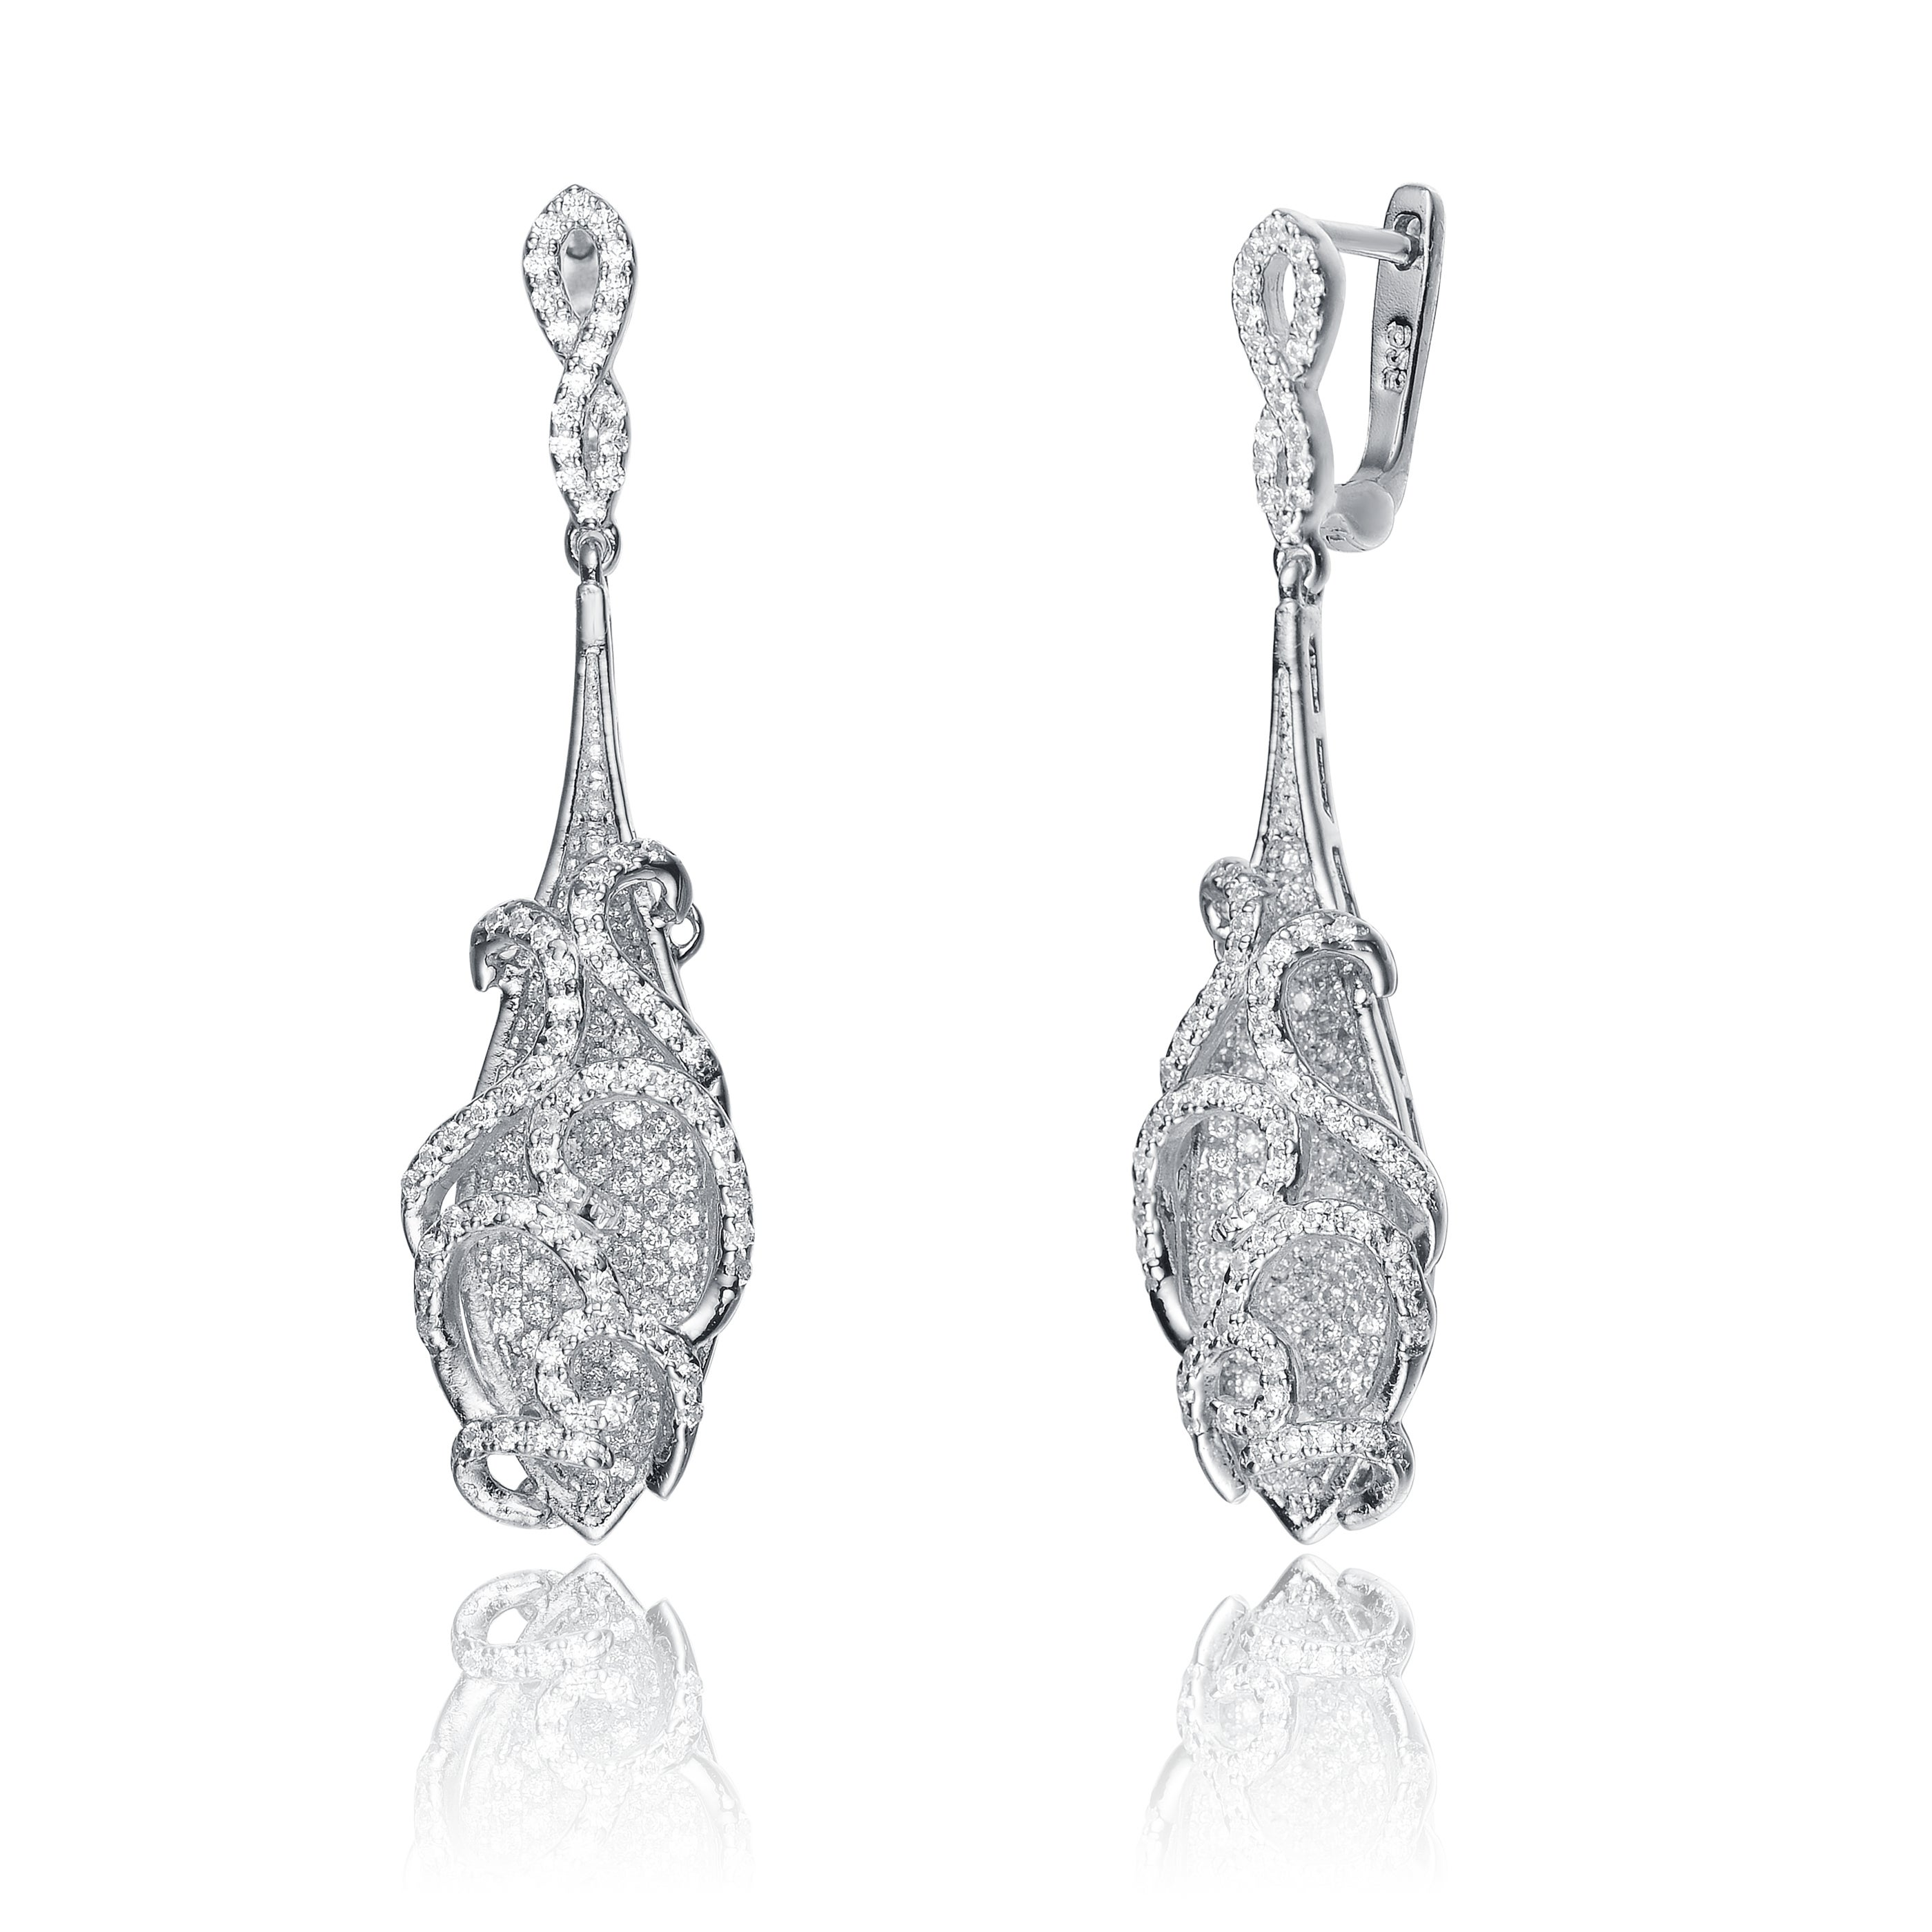 Collette Z Sterling Silver Cubic Zirconia Long Elegant Earrings On Free Shipping Today 9352105